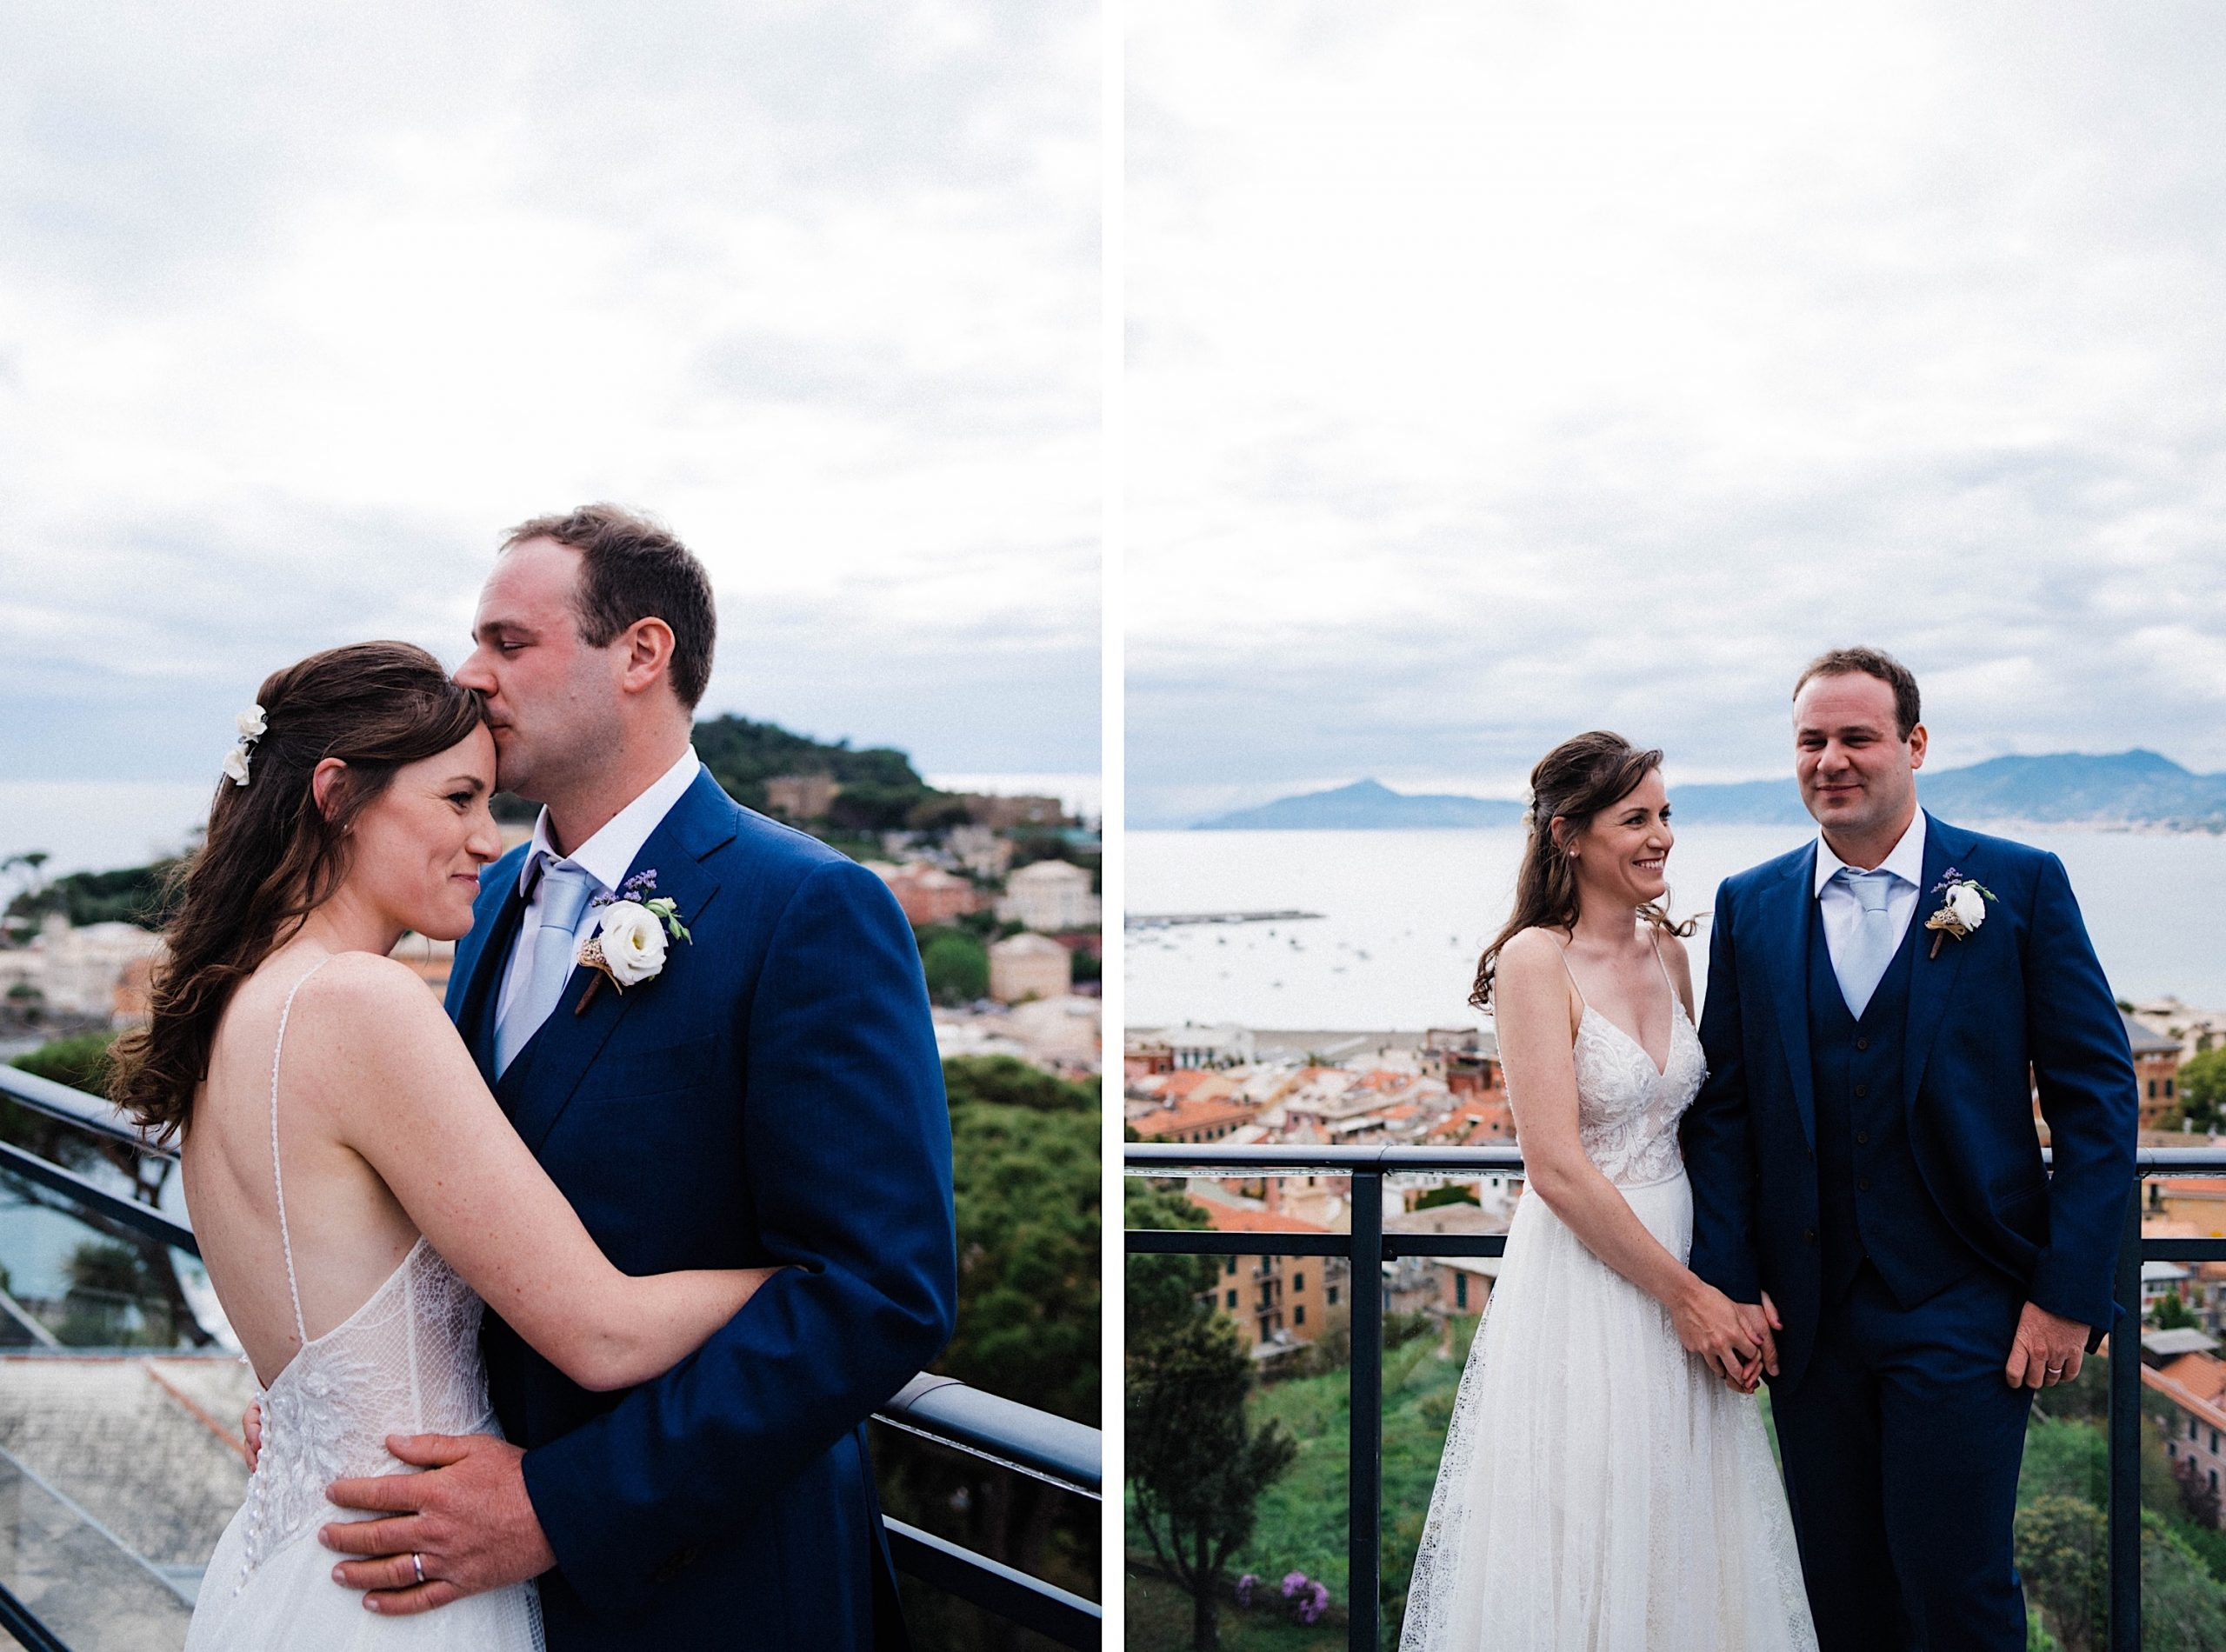 Italian Destination Wedding Photography of two newlyweds standing next to each other and sharing a moment on the Hotel Vis À Vis Rooftop.